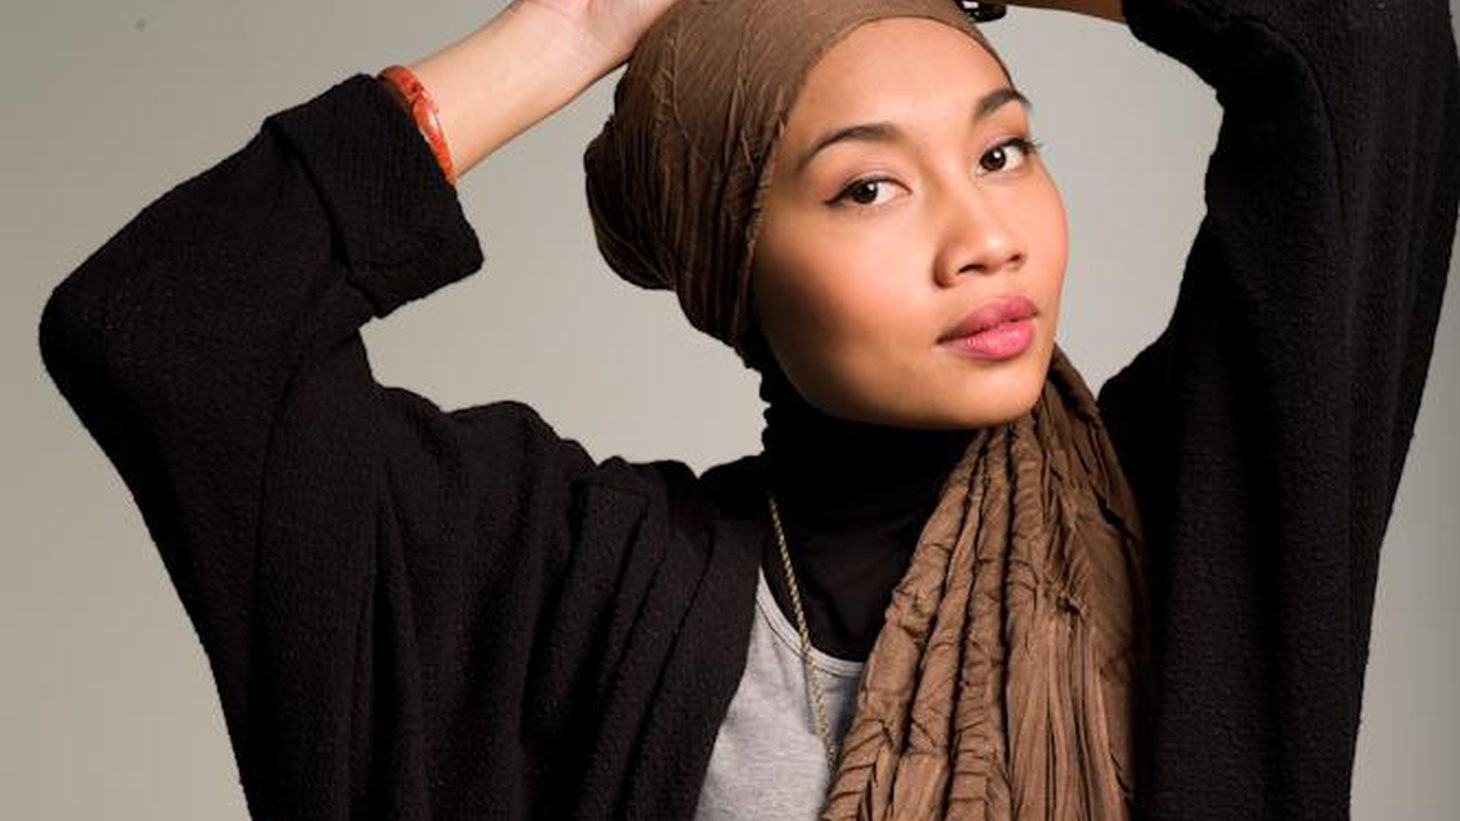 Malaysian singer Yuna writes sweet ruminations on life and love that transcend all boundaries. Her soft vocals and thoughtful lyrics are sure to have universal appeal...